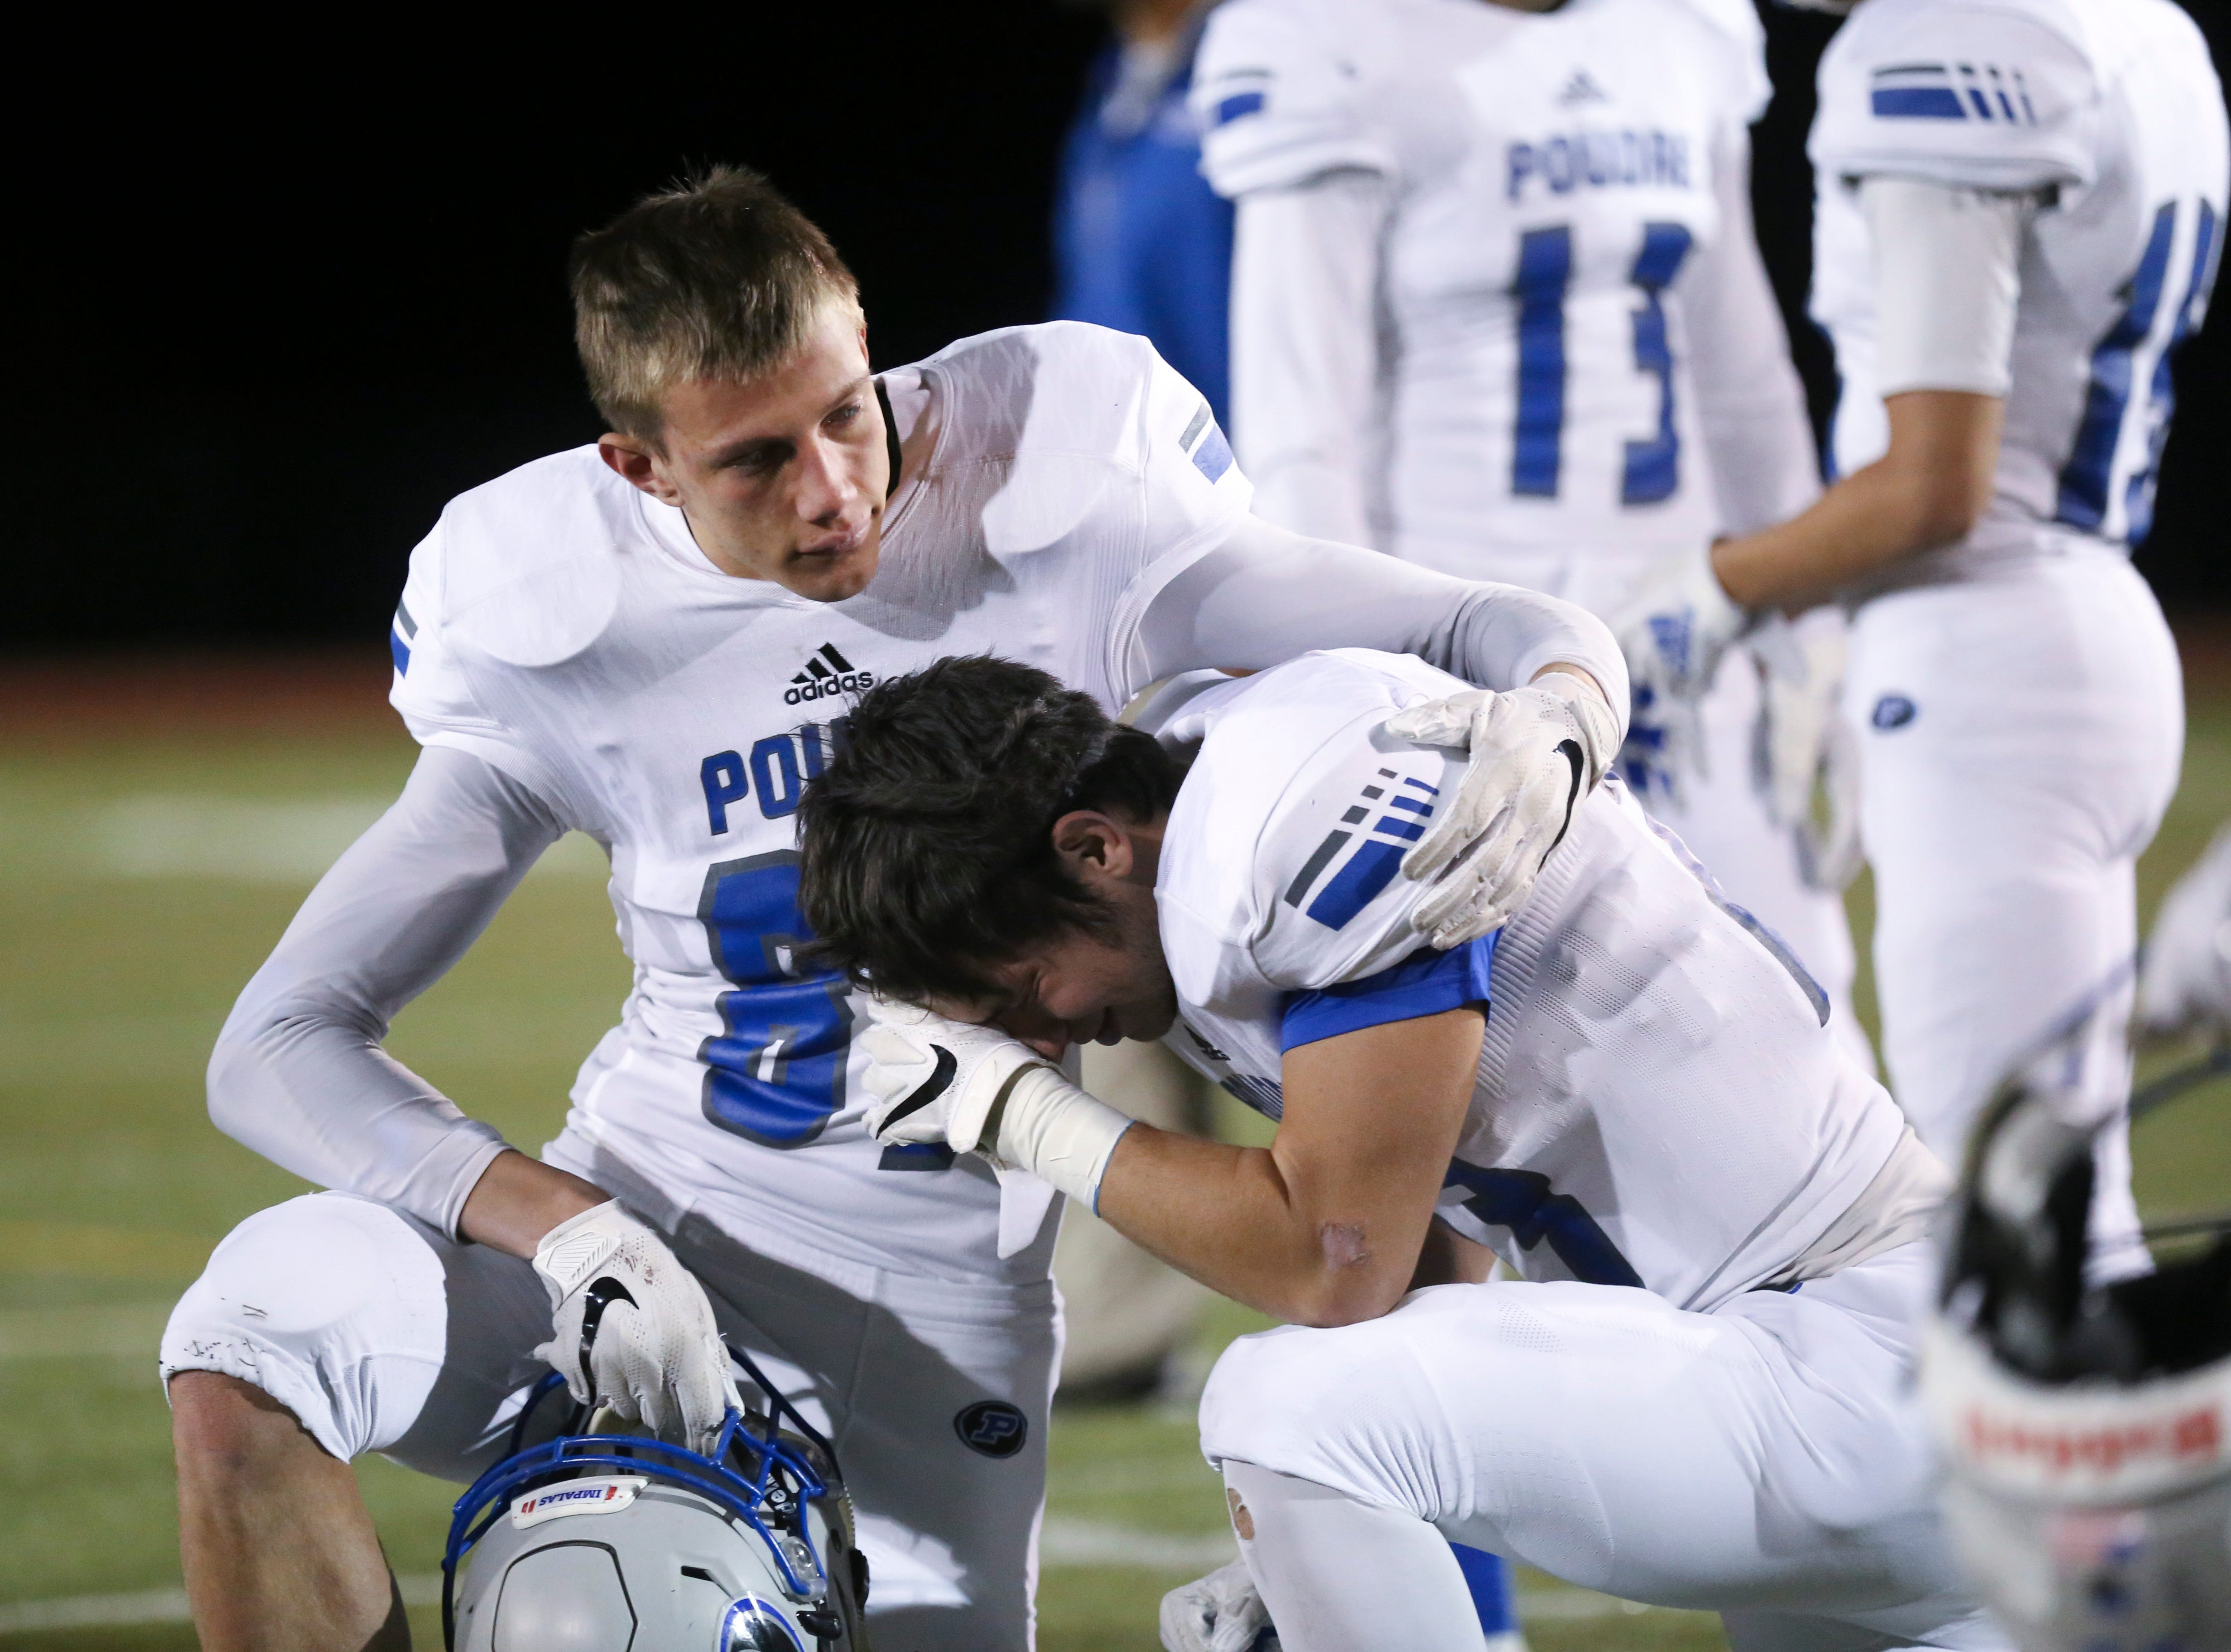 Poudre High School players console each other after being defeated by Cherokee Trail High School in a double overtime playoff game on Friday evening.